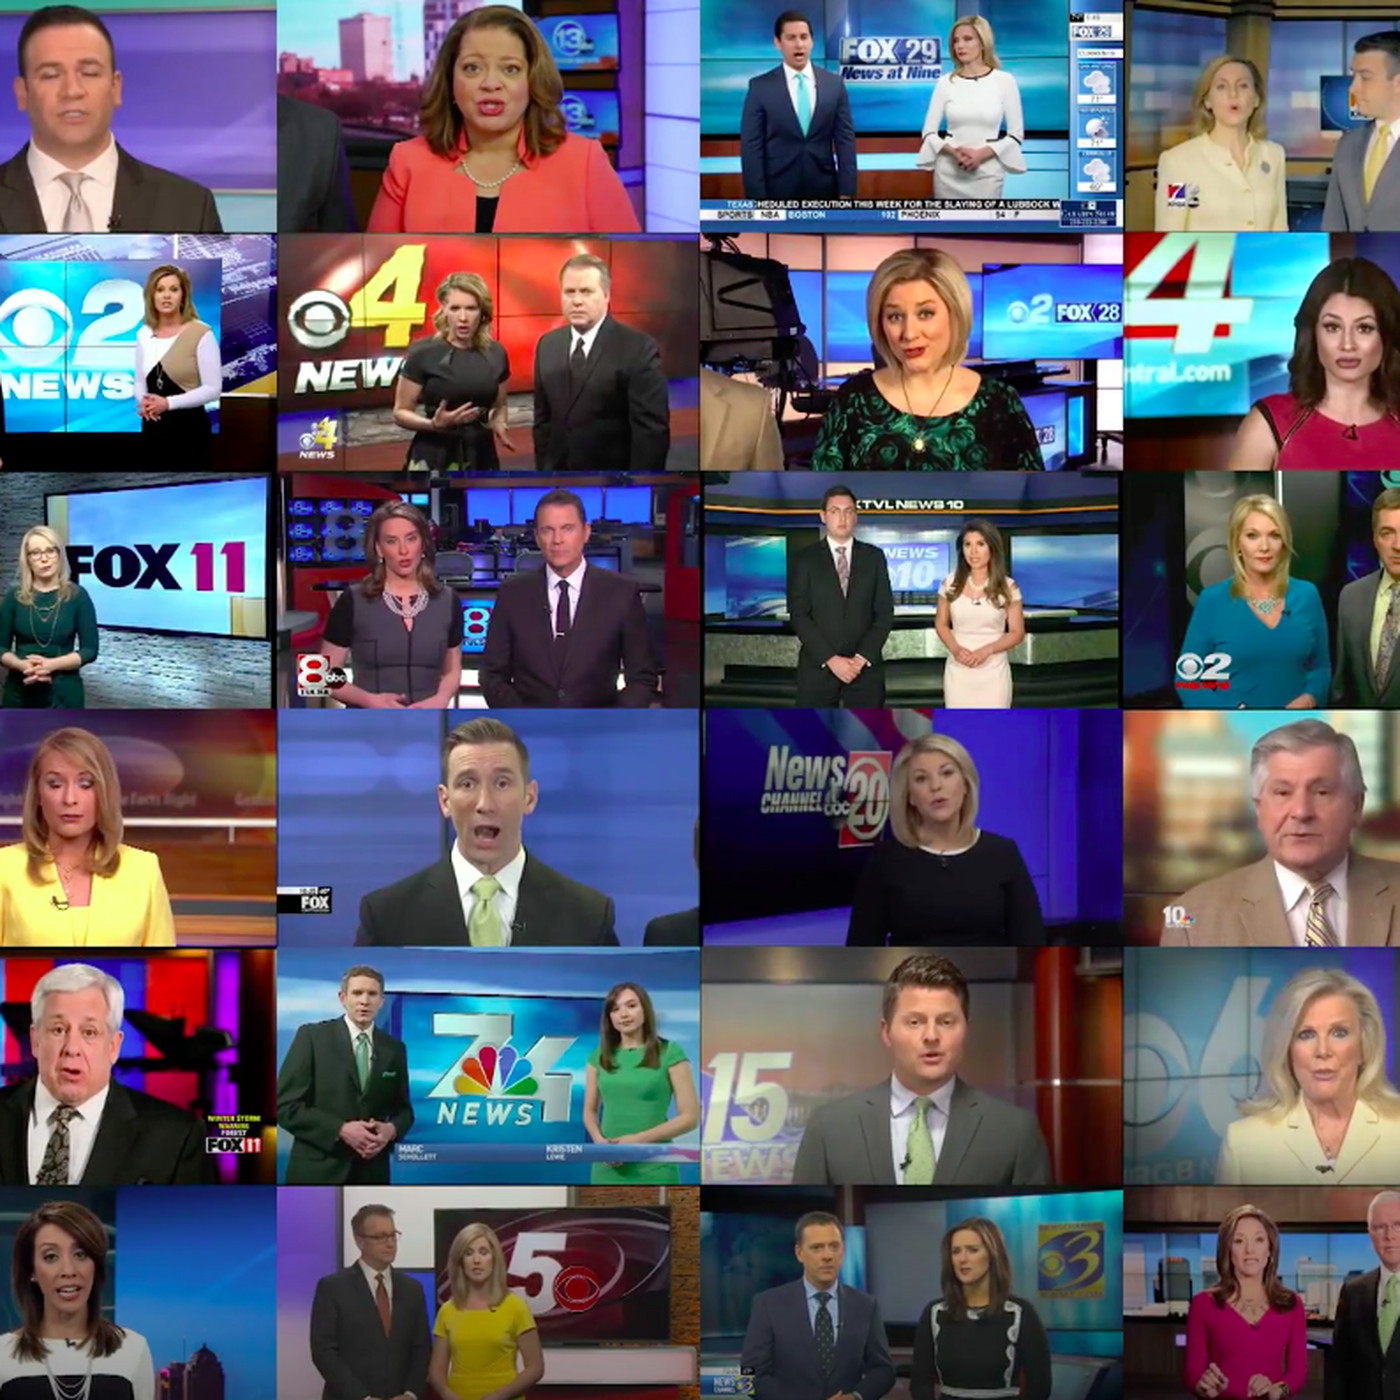 Sinclair News: we're journalists at a Sinclair news station  We're